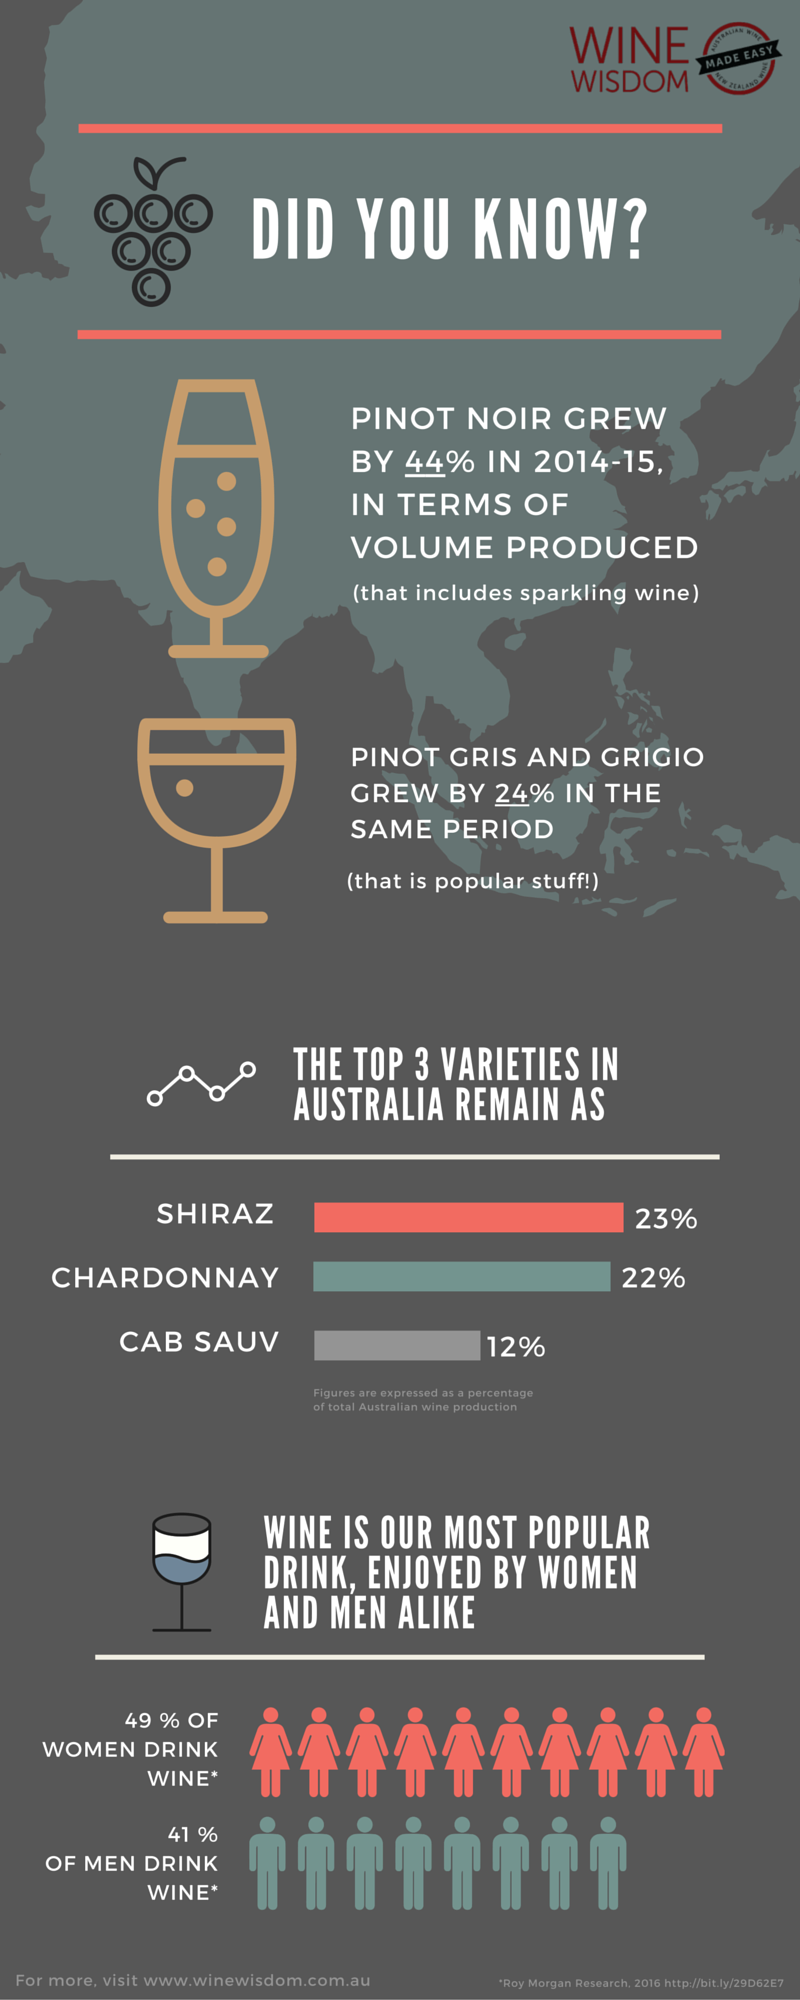 Interesting facts about wine in Australia